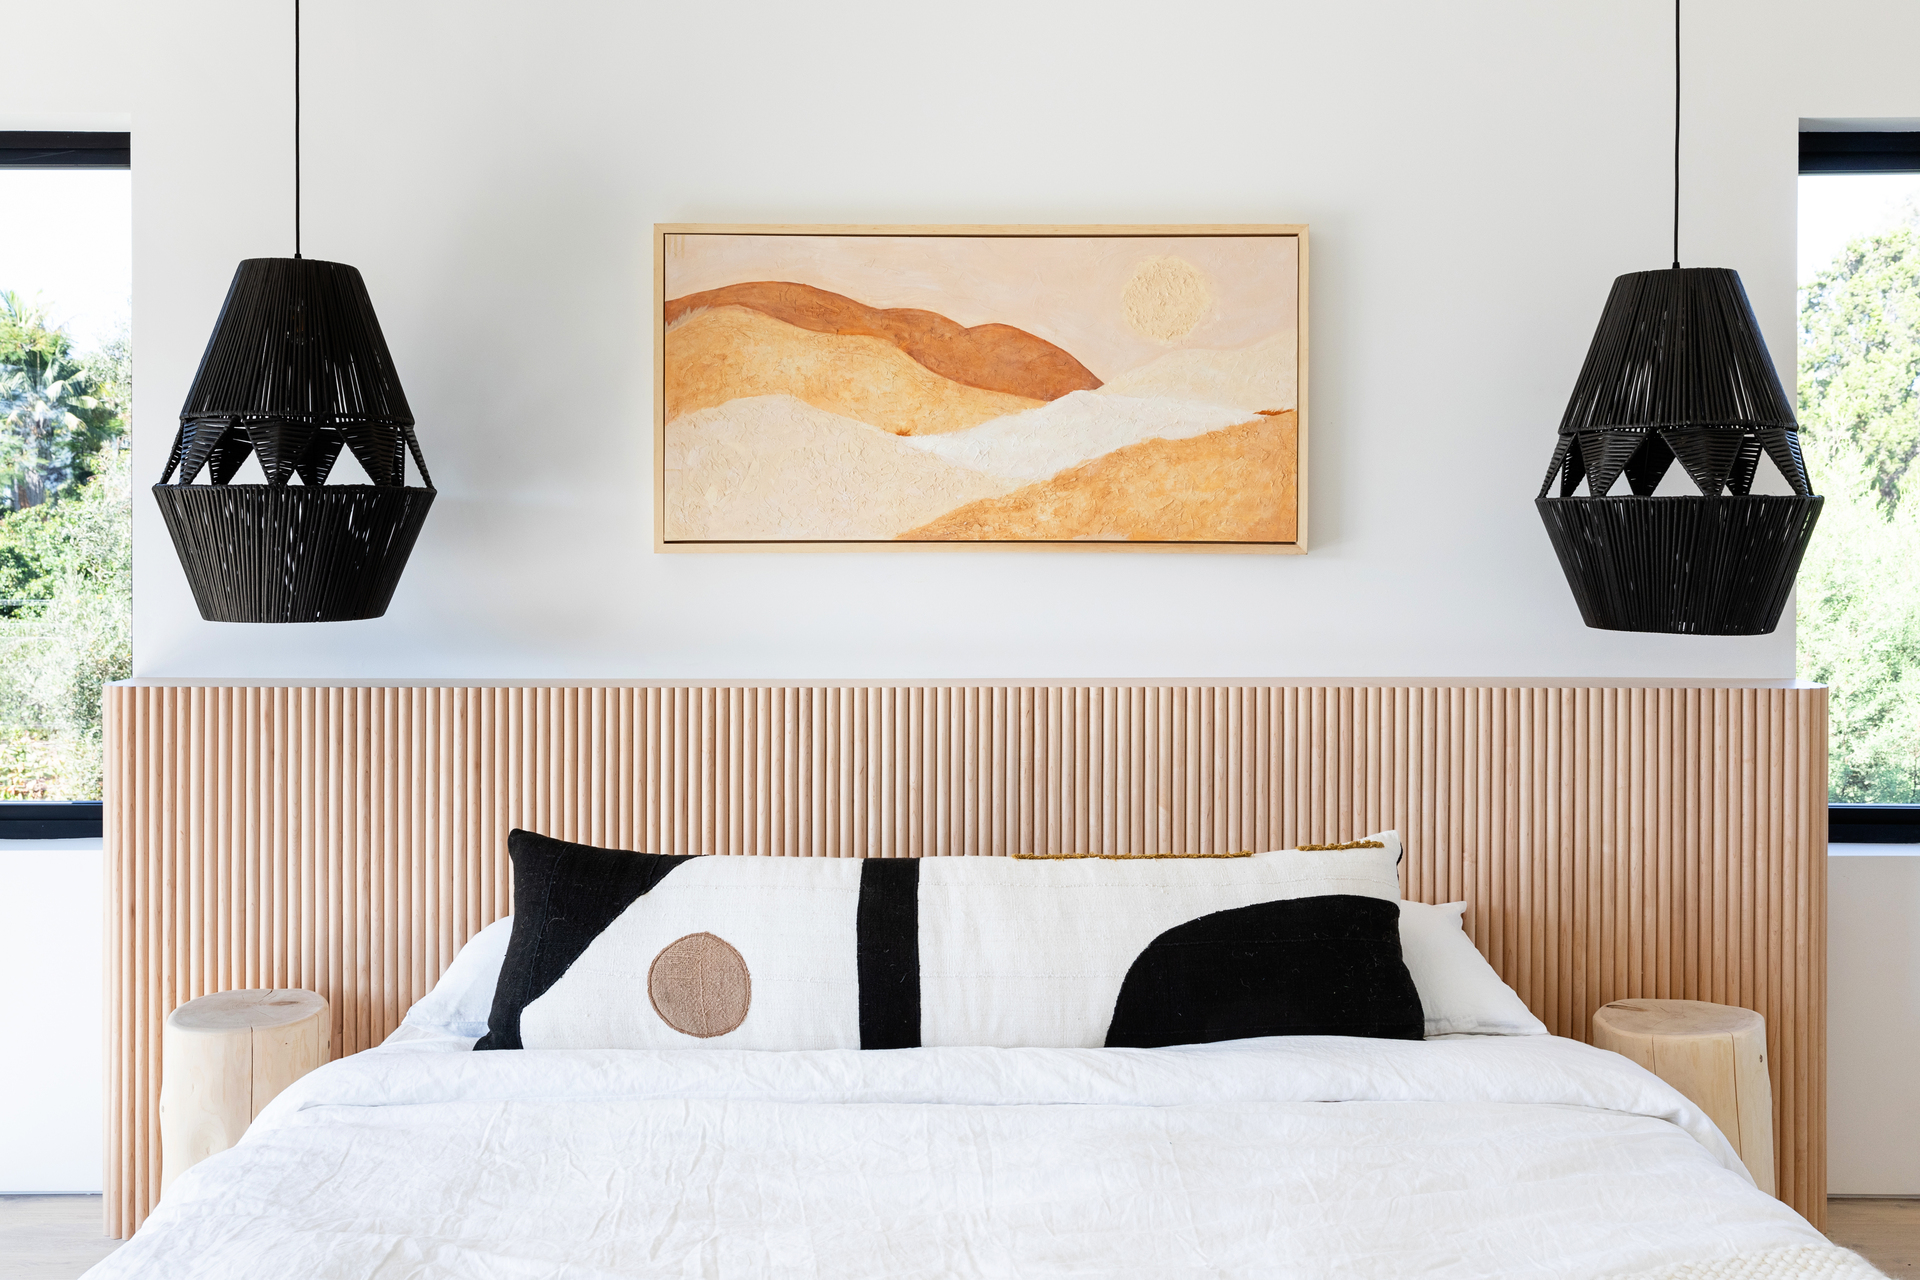 The wicker hanging pendant lights accent the gorgeous tambour solid wood headboard. Solid wood tambour panels provided by Surfacing Solution. Panels can be stained to match any design.